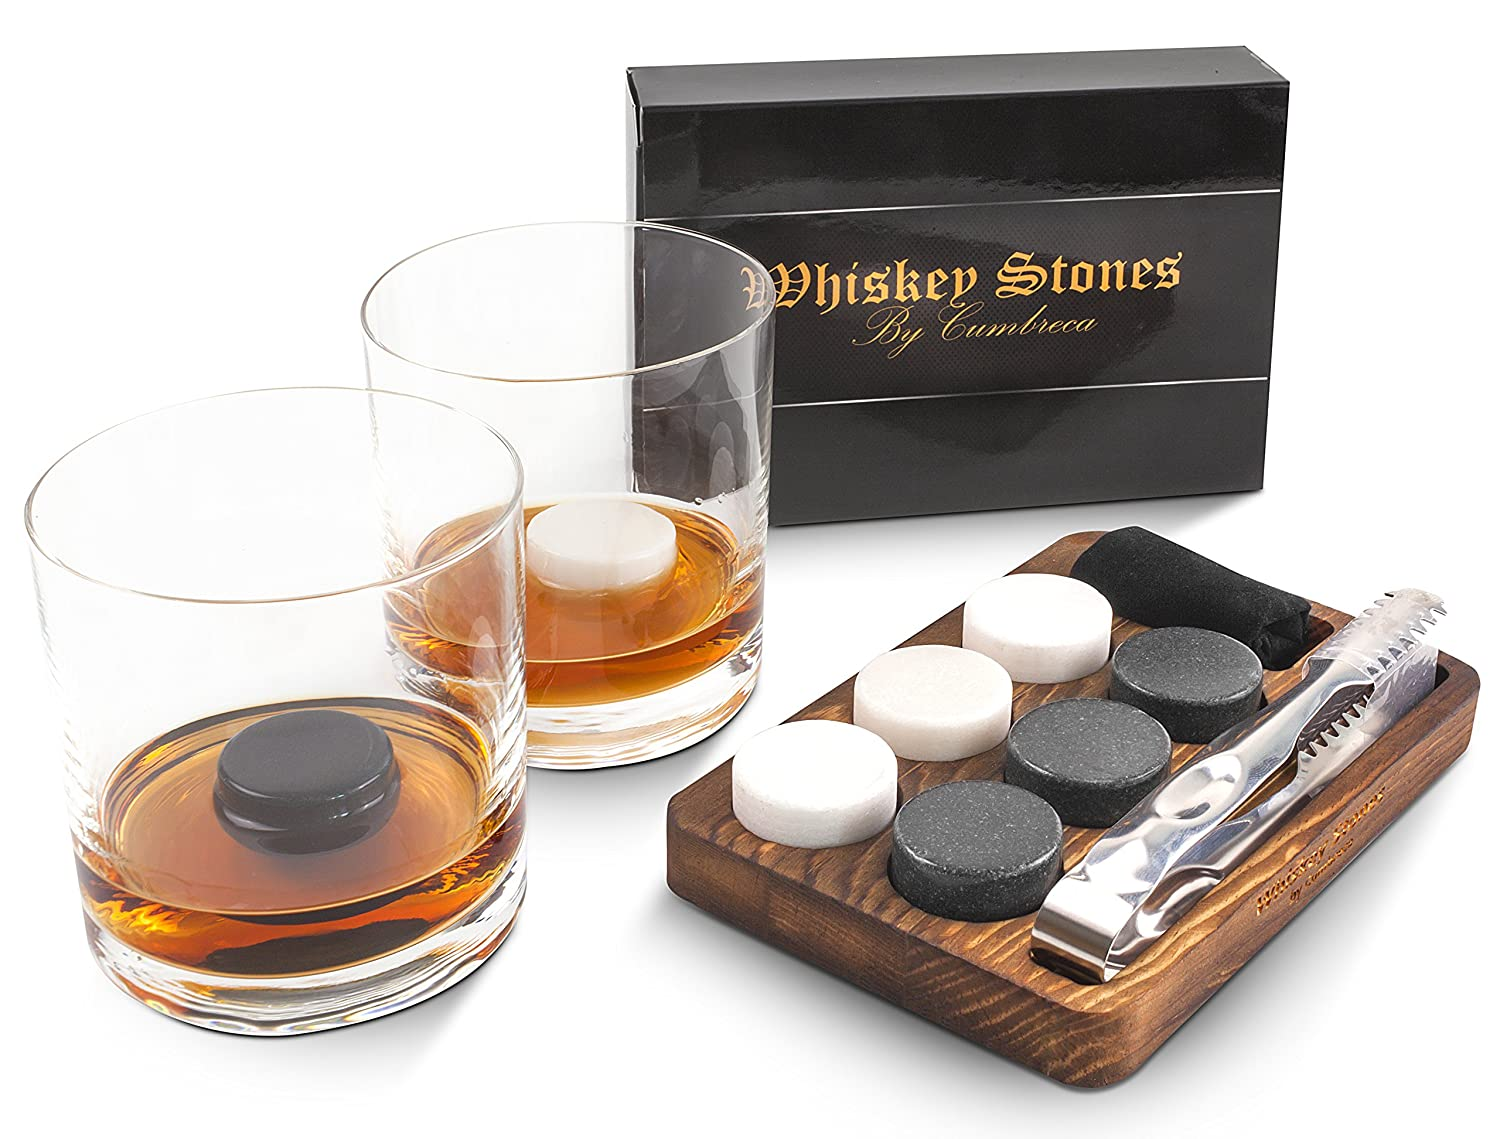 Cumbreca Whiskey Stones Gift Set of 6 Round Granite Whisky Rocks for Chilling your Beverages, Reusable Drinking Stones, Ice Cubes, Wooden Tray, Velvet Pouch, Stainless Steel Tongs by